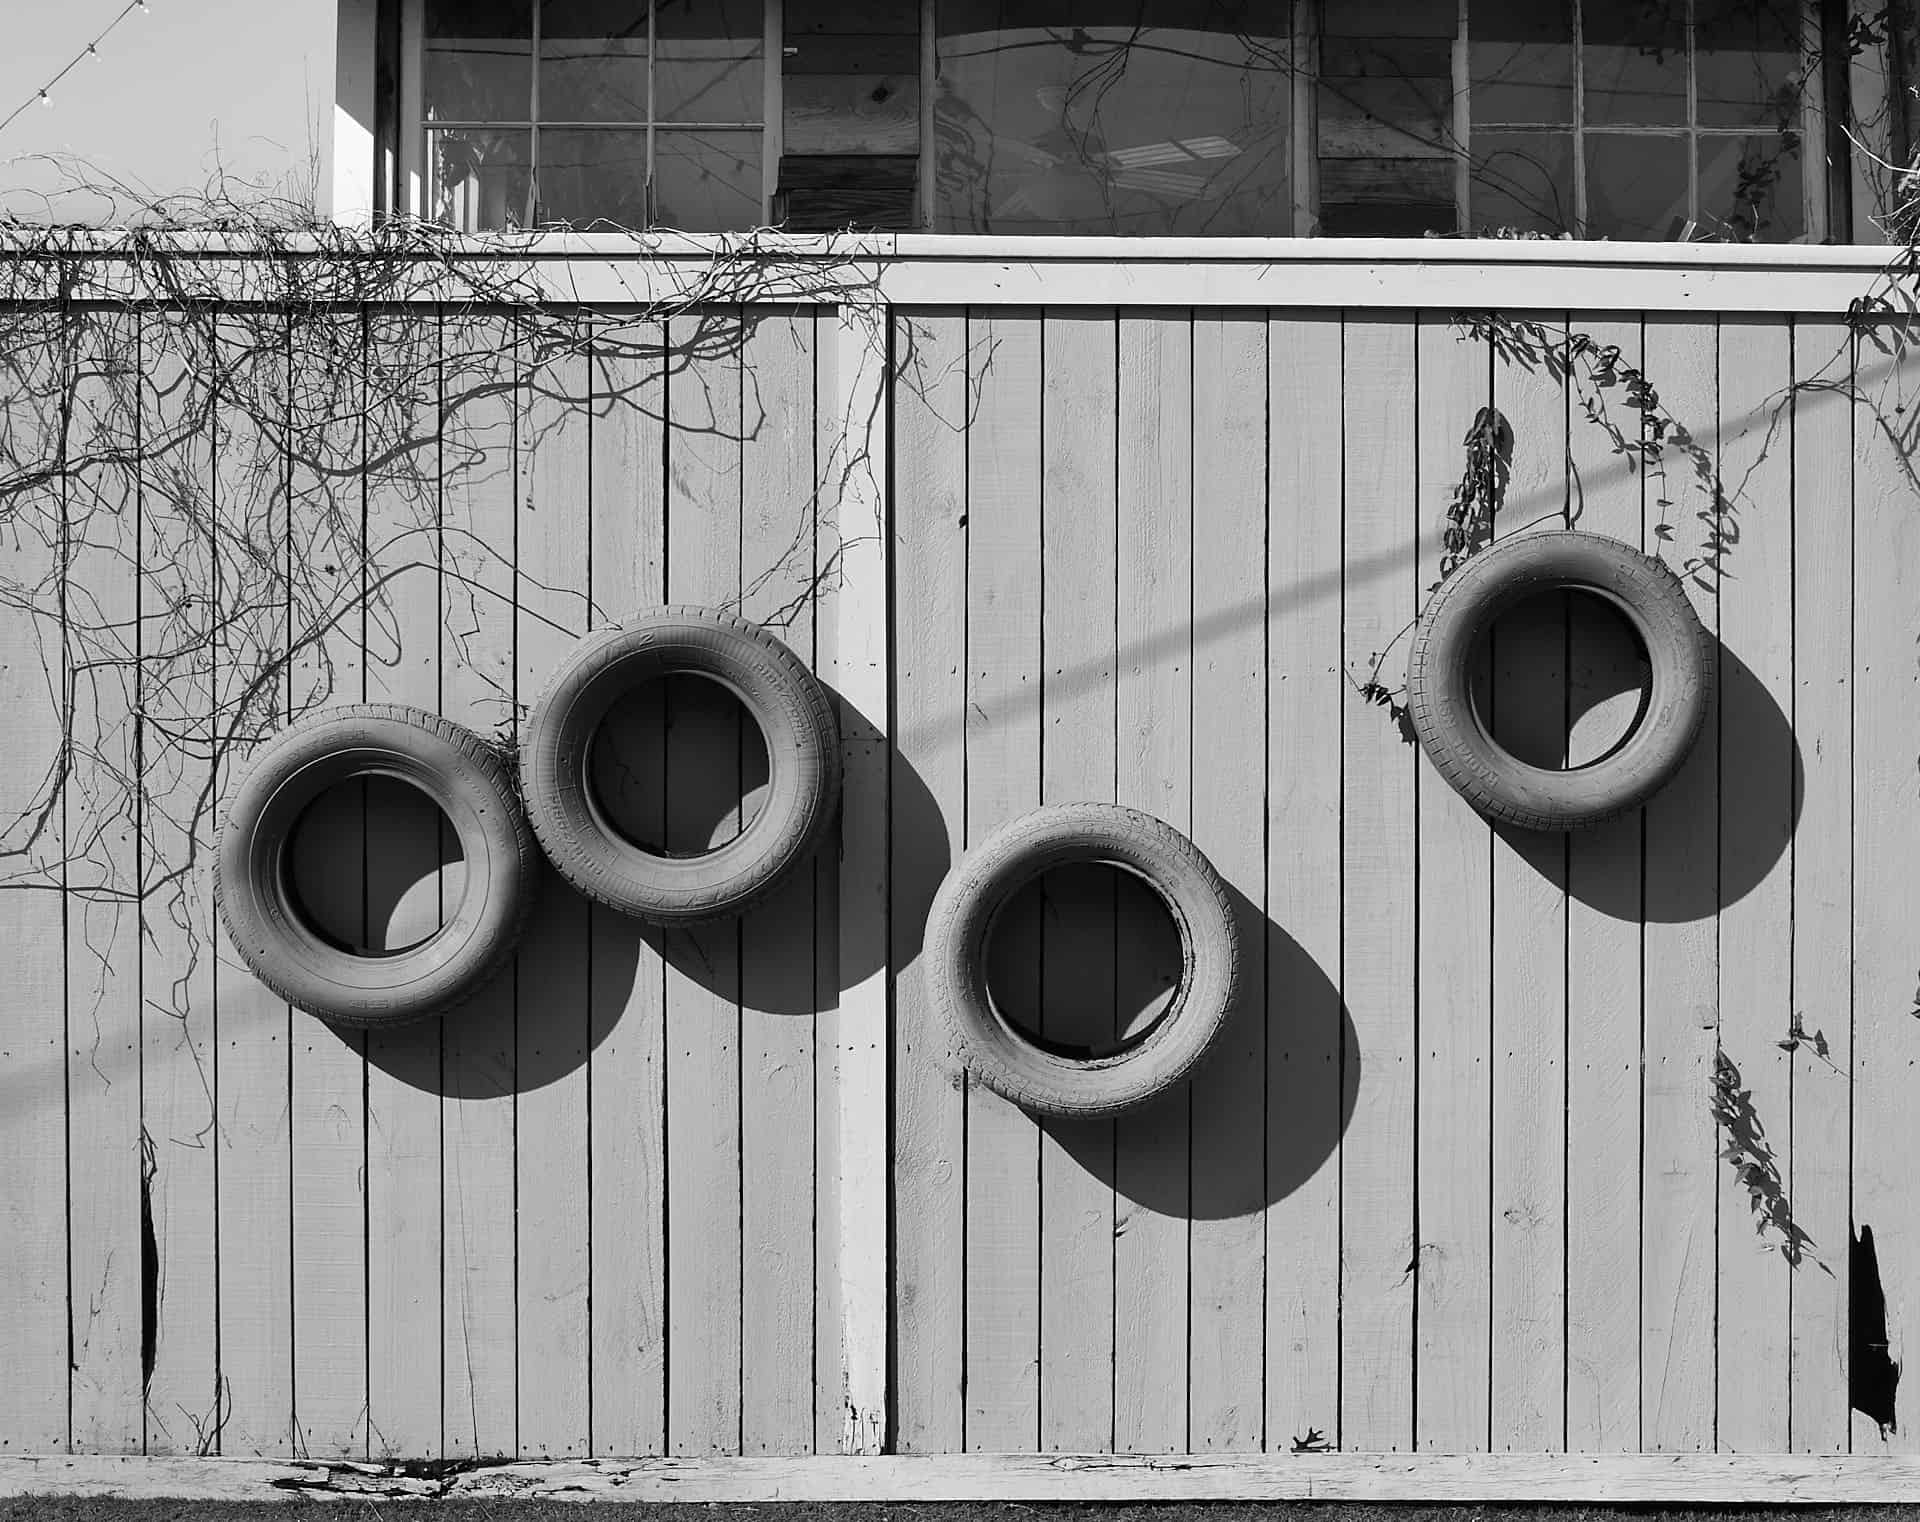 4 tires used as planters on a garden wall.